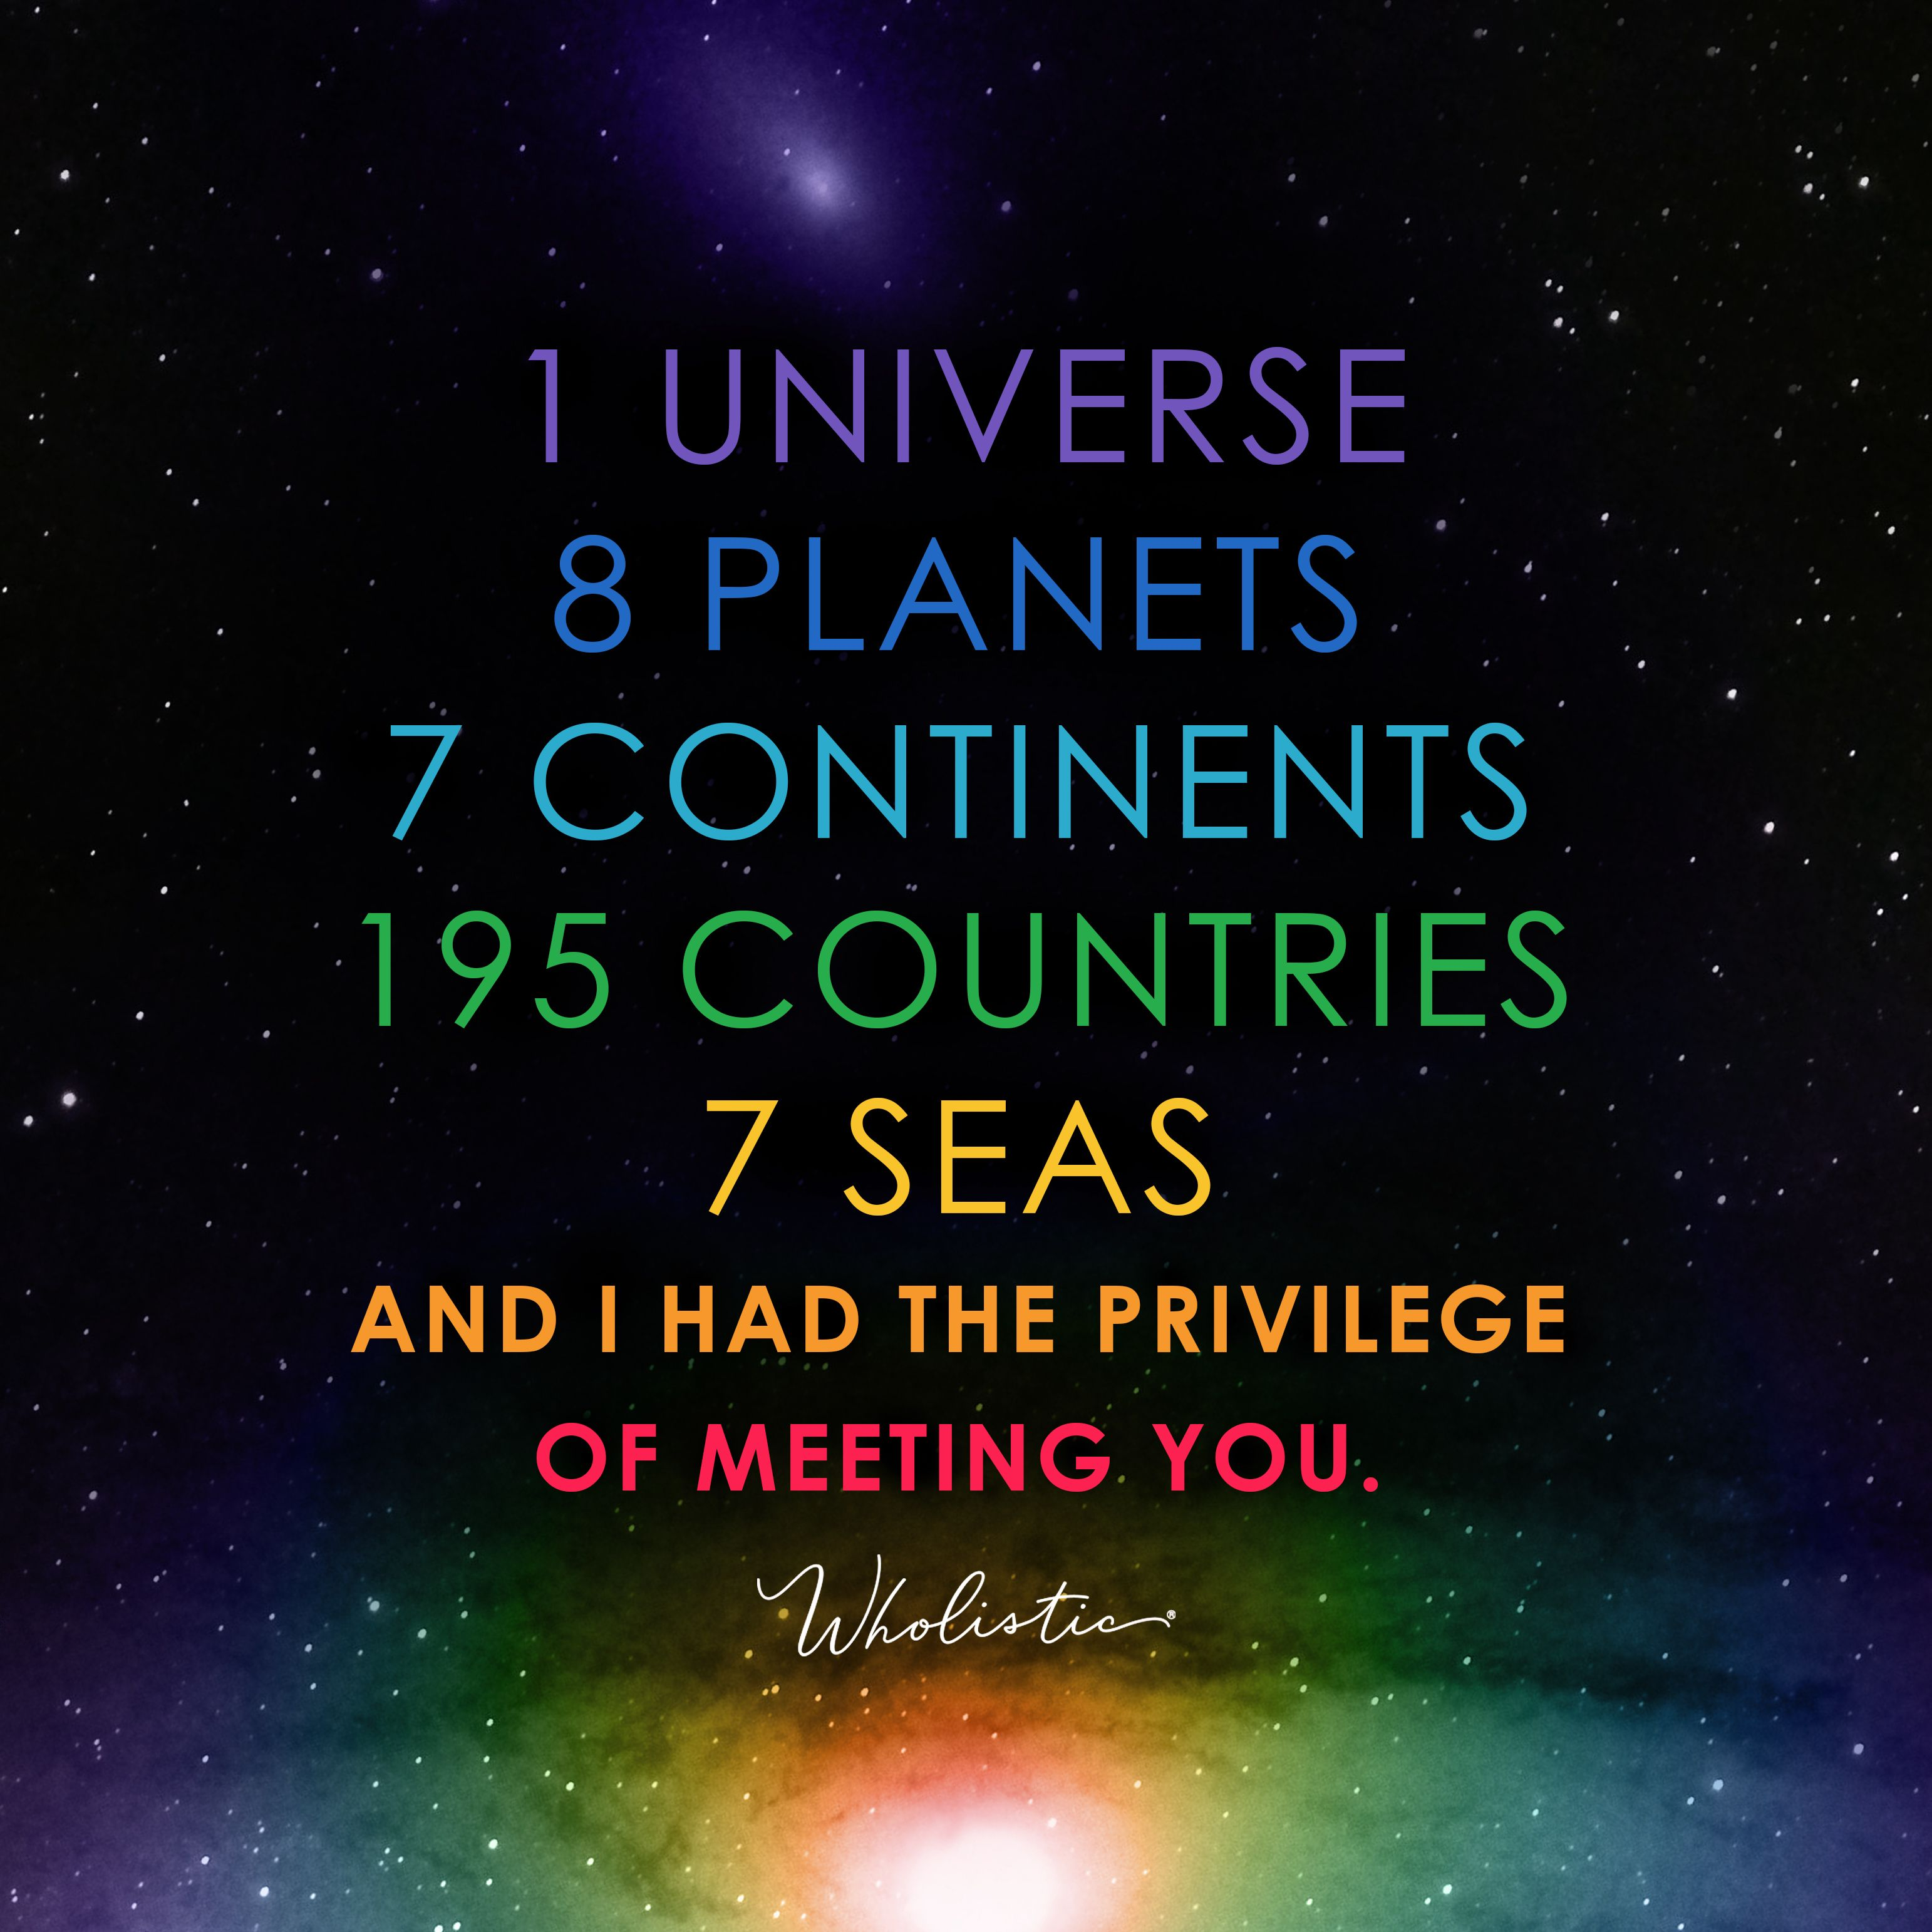 Quote 1 Universe 8 Planets 7 Continents 195 Countries